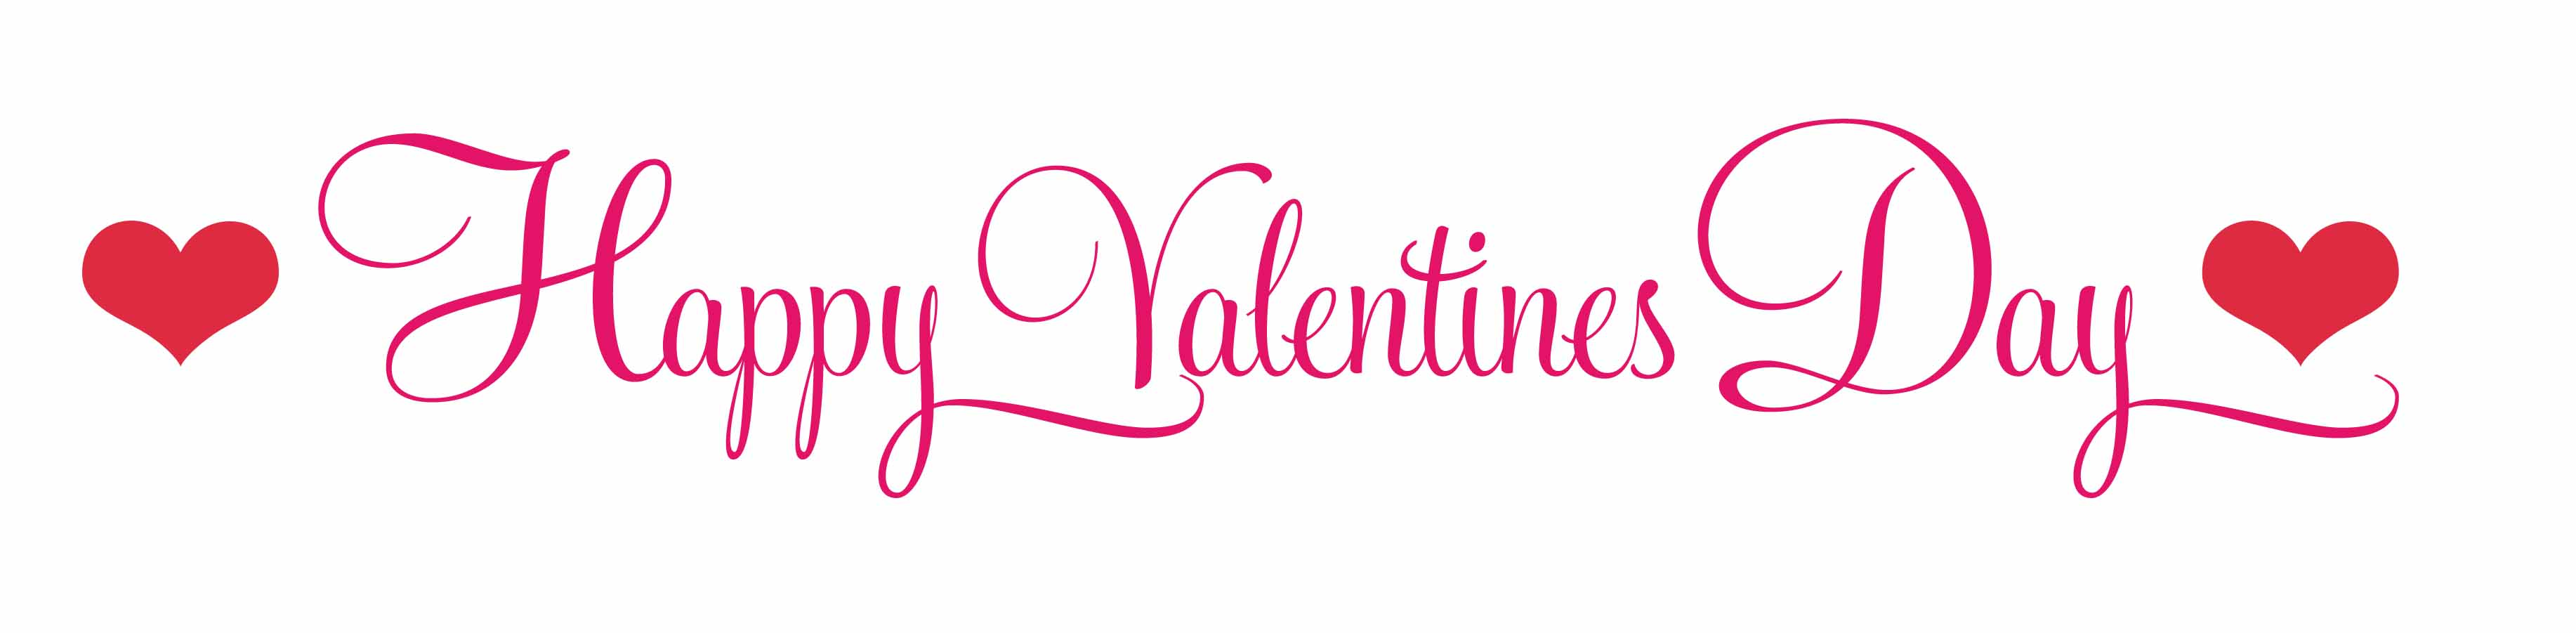 2017 Valentines Day Guide Featuring Starlooks Profession